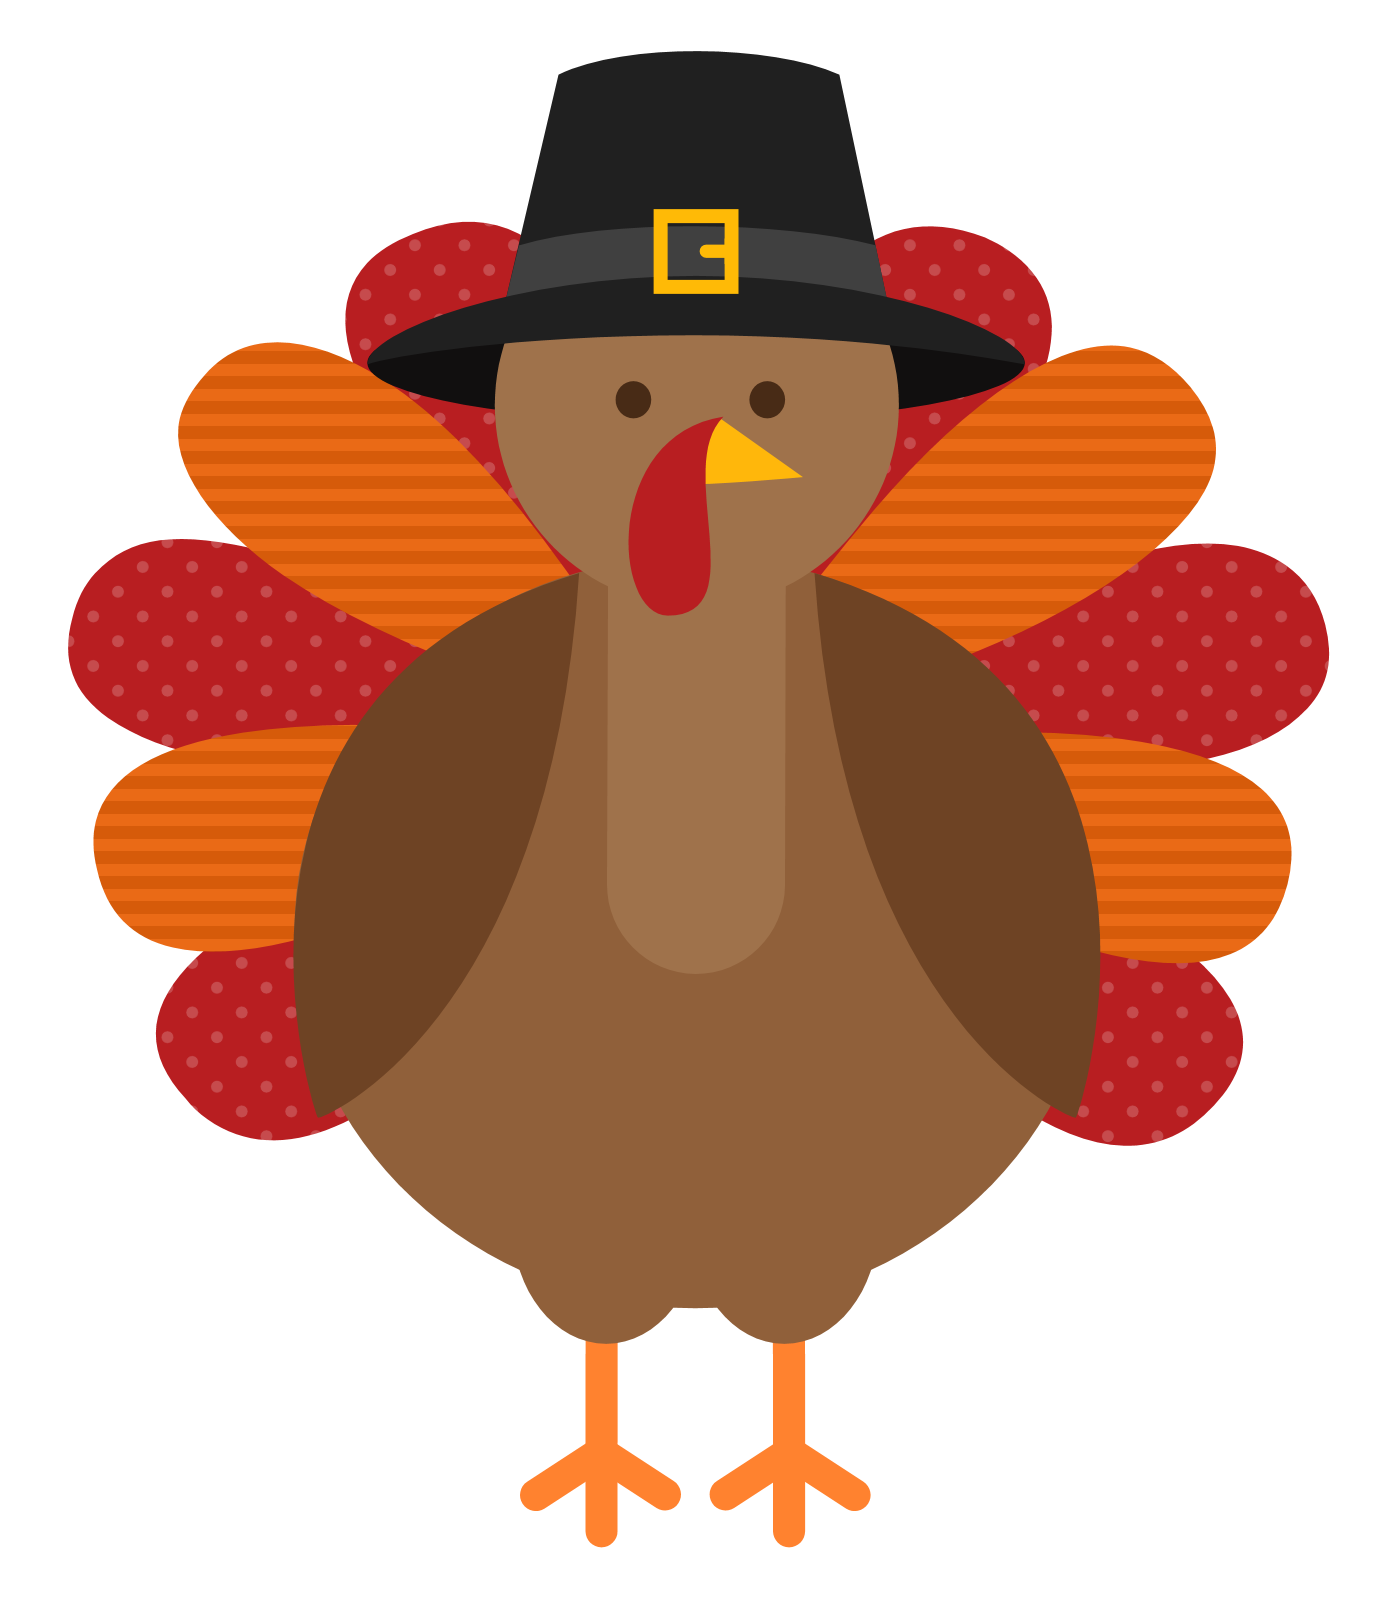 Thanksgiving turkey fitness clipart clipart freeuse Blog Archives - Page 7 of 21 - Laurel Ridge Golf Club, NC clipart freeuse